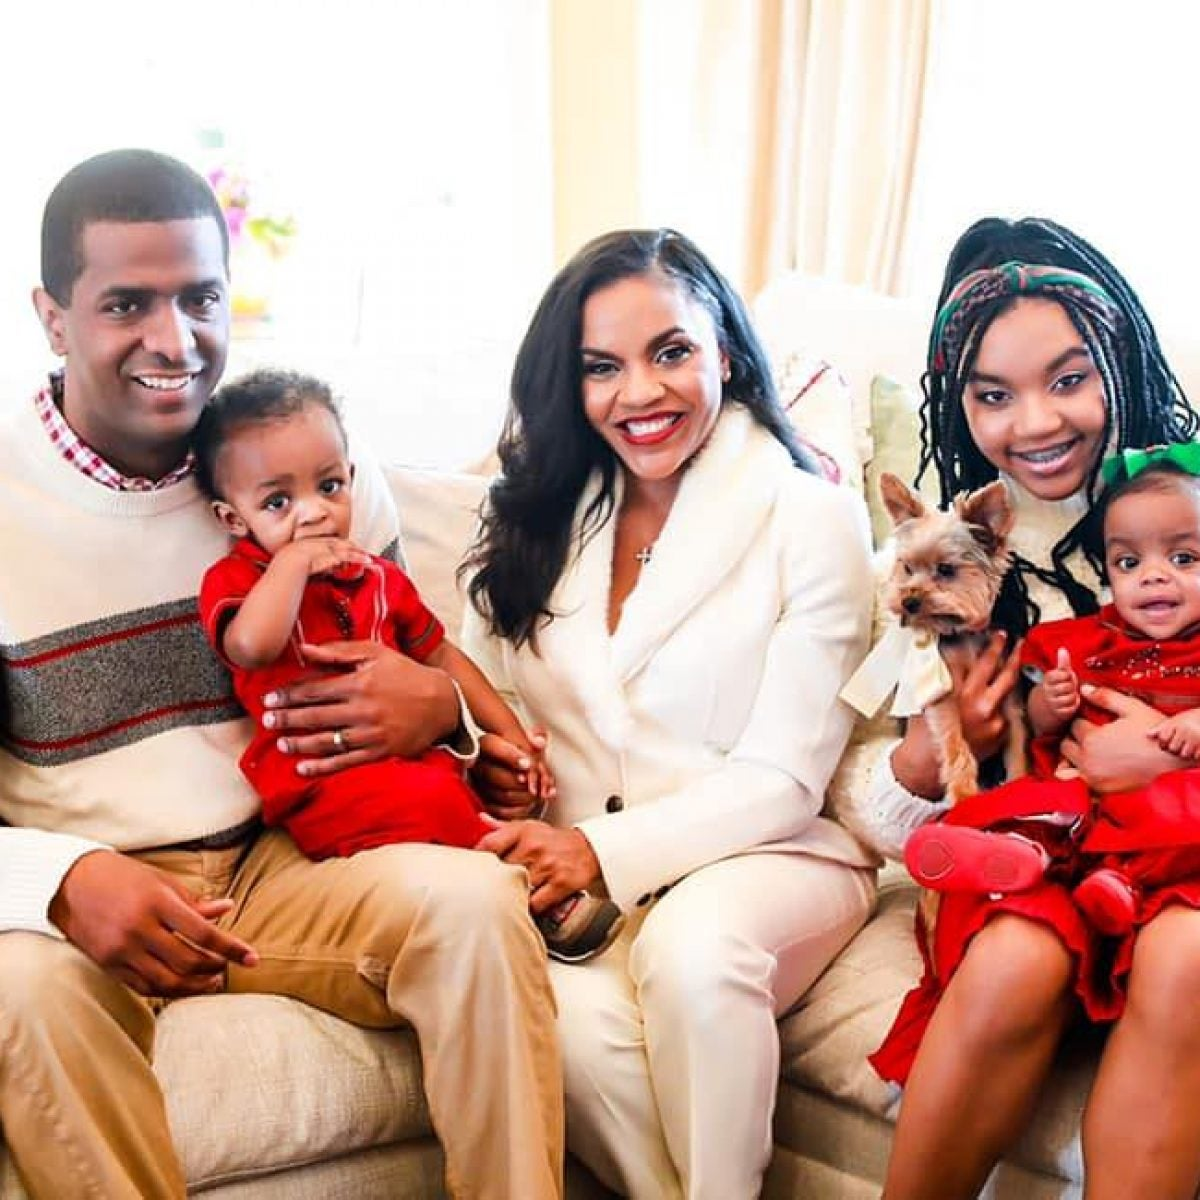 HBCU Love: For Bakari Sellers' Kids, The Only 'School Choice' Is An HBCU